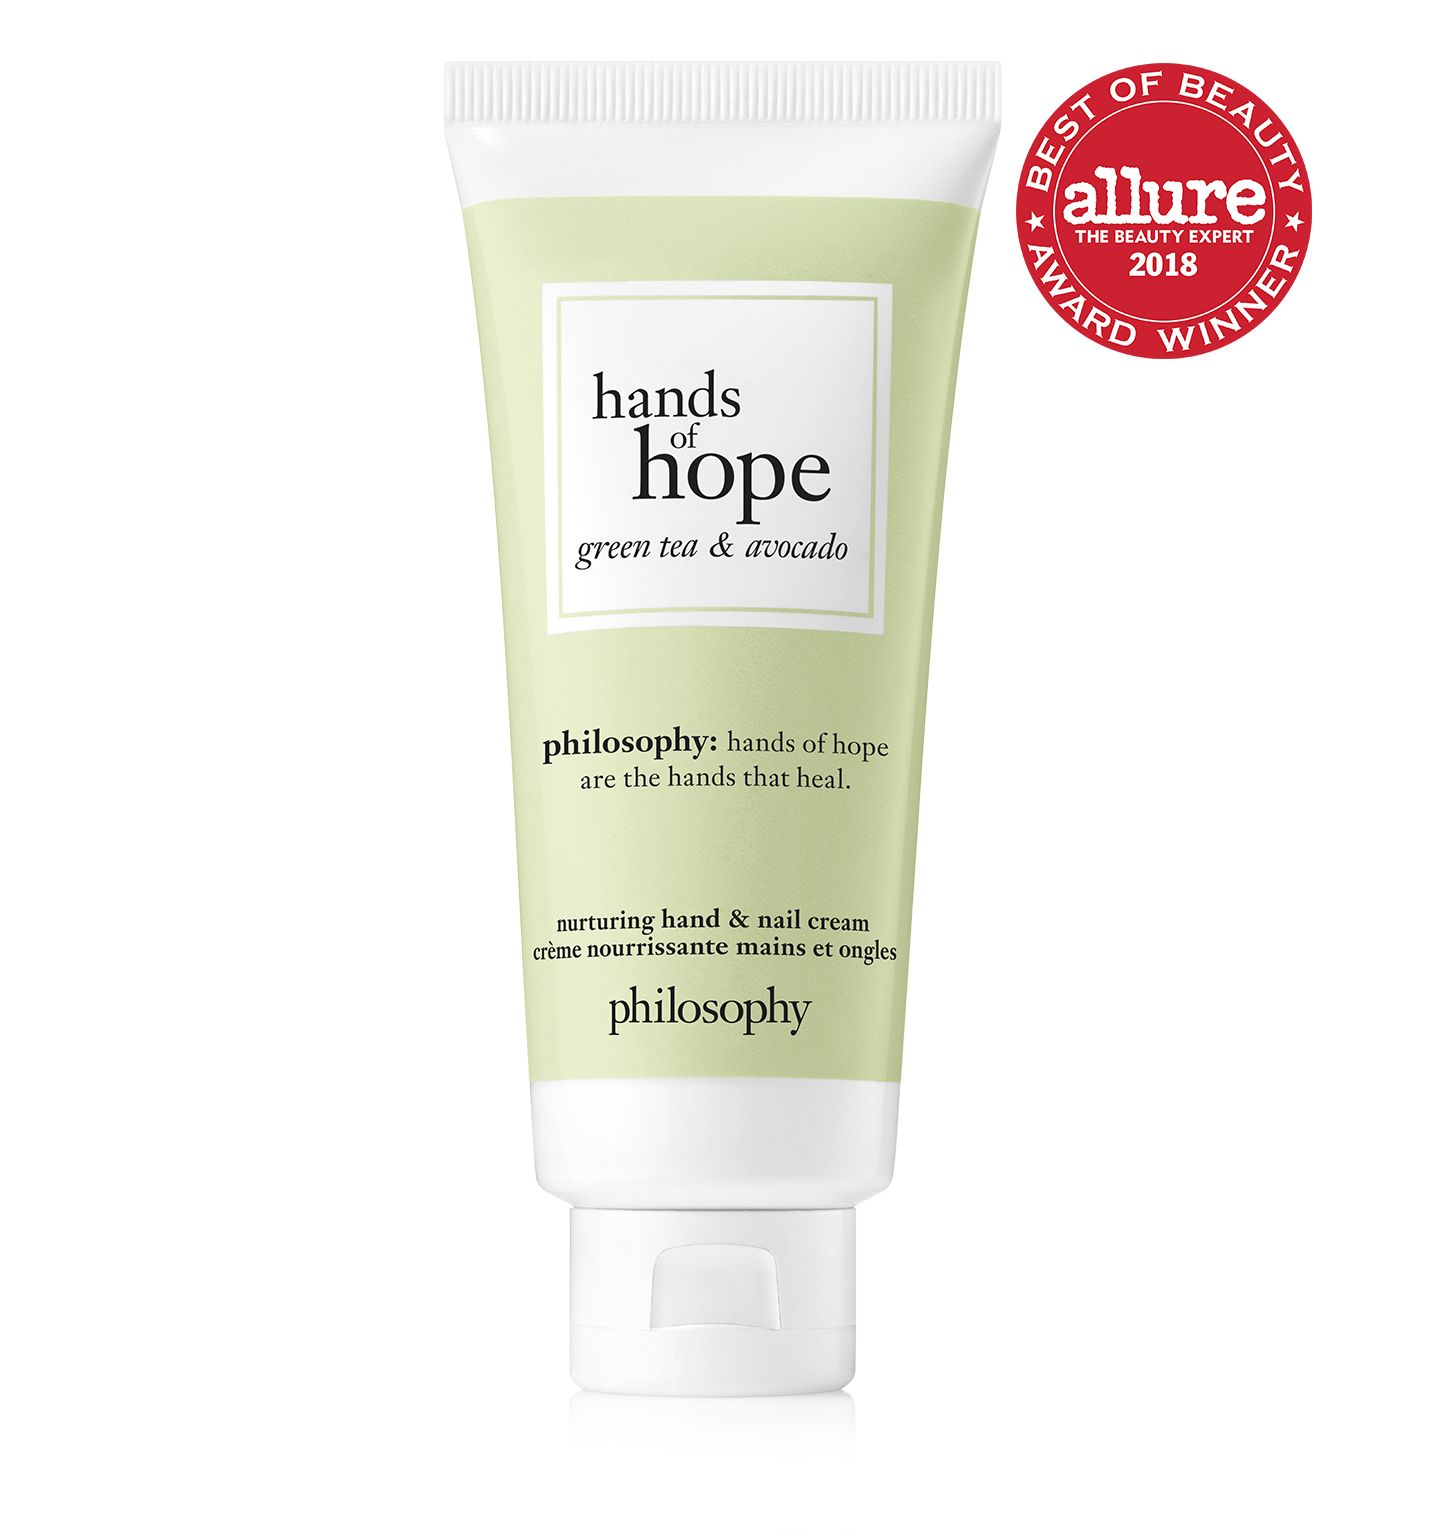 hands of hope green tea & avocado hand cream